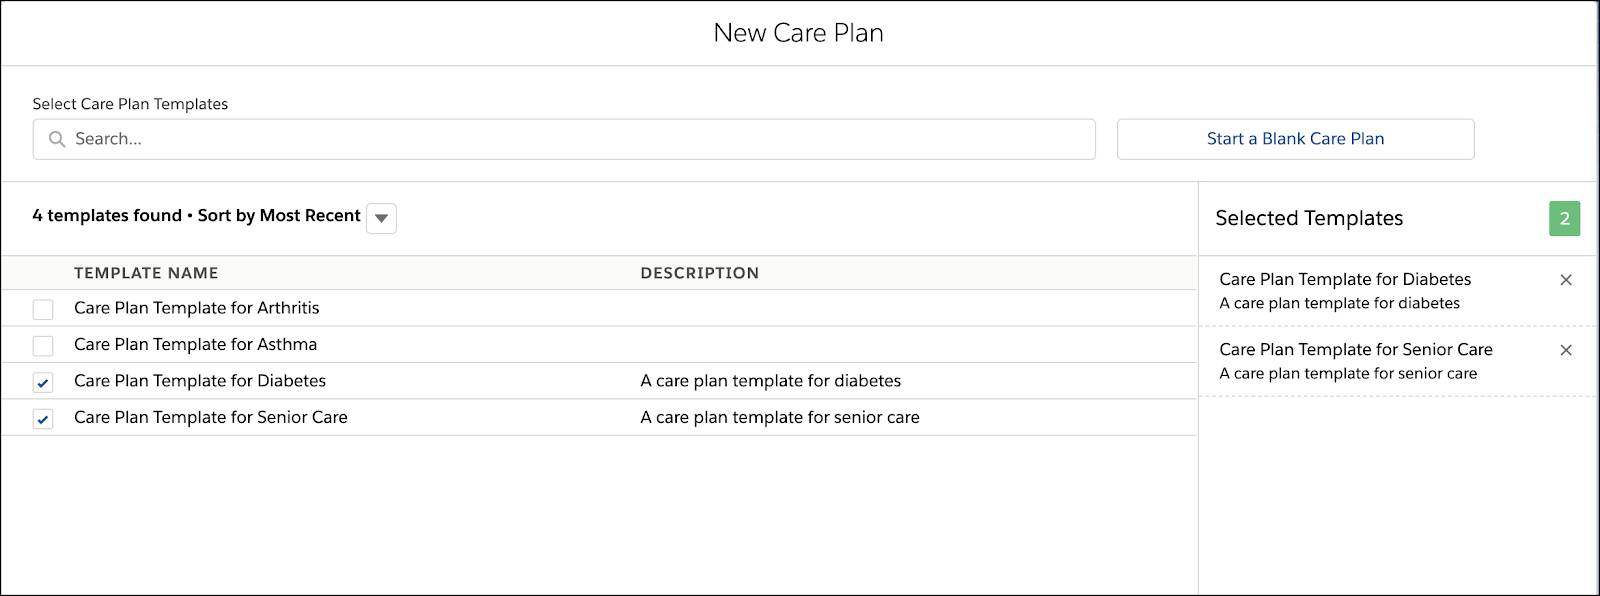 Image of New Care Plan tab with a list of template care plans.